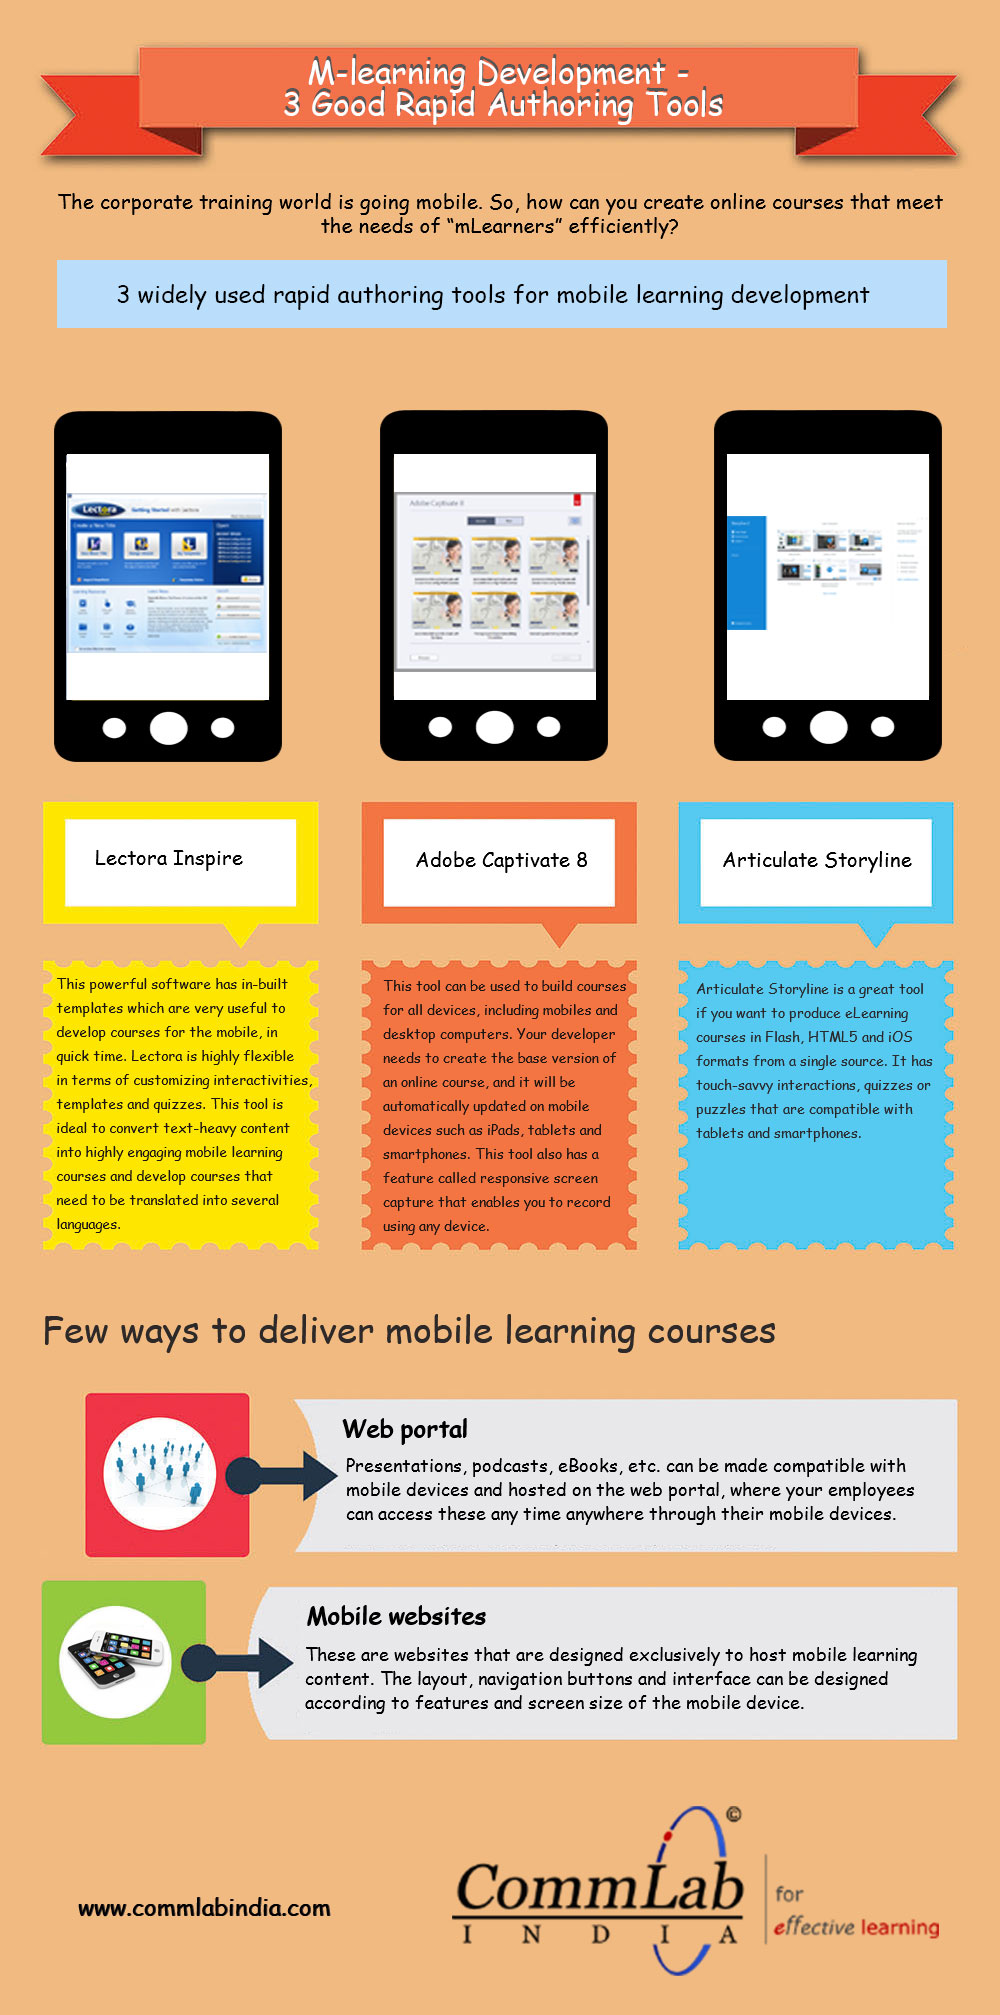 3 Good Rapid Authoring Tools for M-learning Development - An Infographic